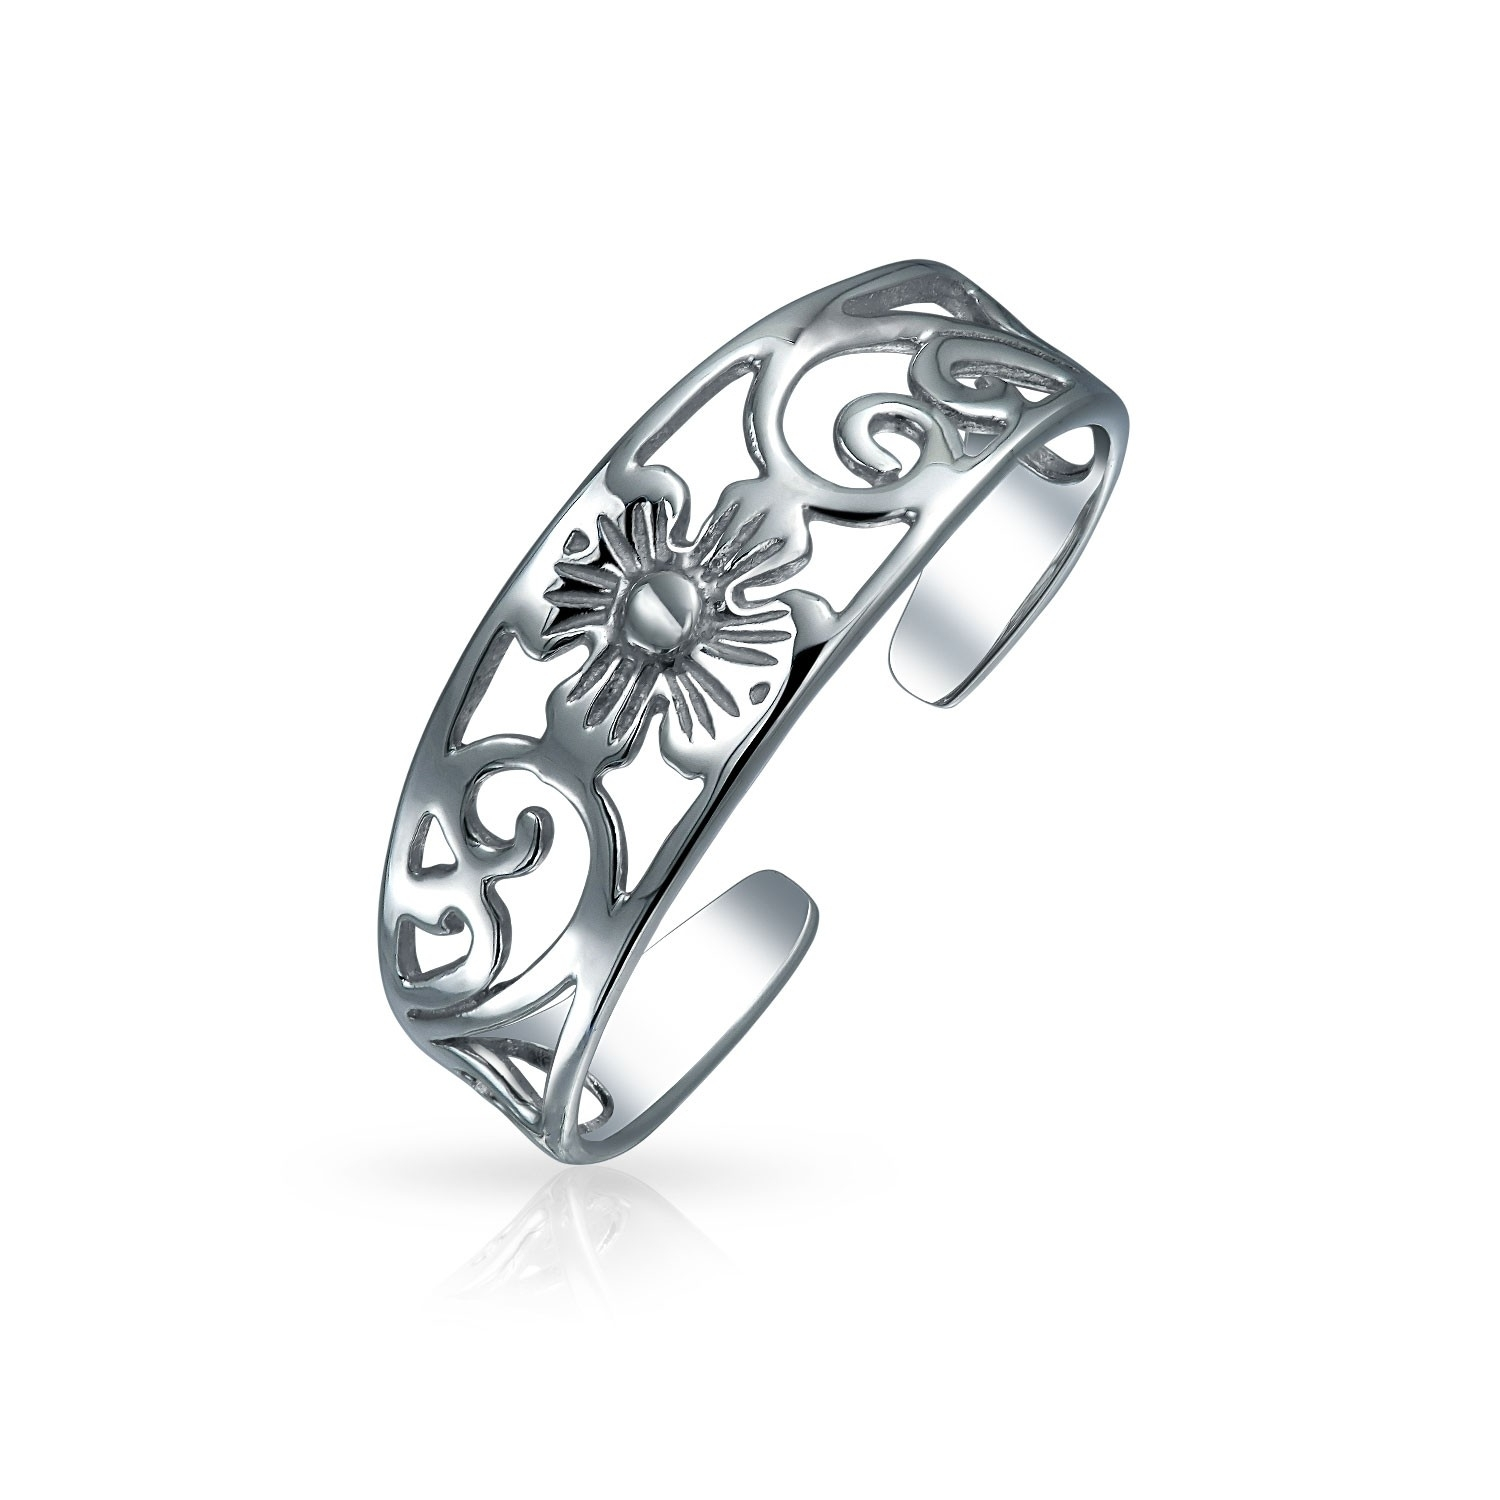 Adjustable Filigree Flower Toe Ring 925 Sterling Silver Midi Rings Intended For Current Silver Toe Rings (View 1 of 15)